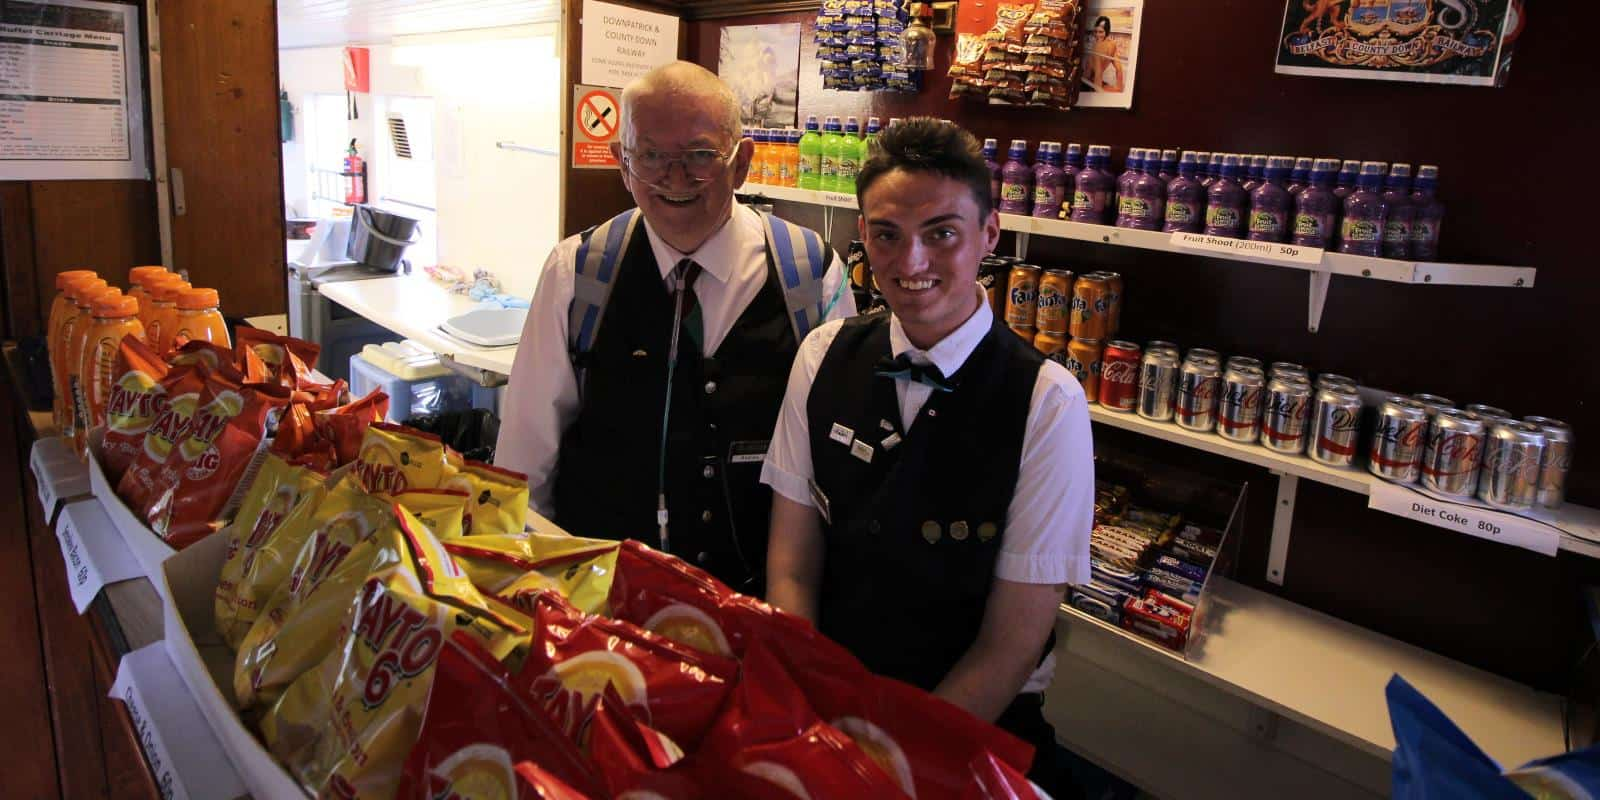 Andrew and Barry, our cheerful buffet team